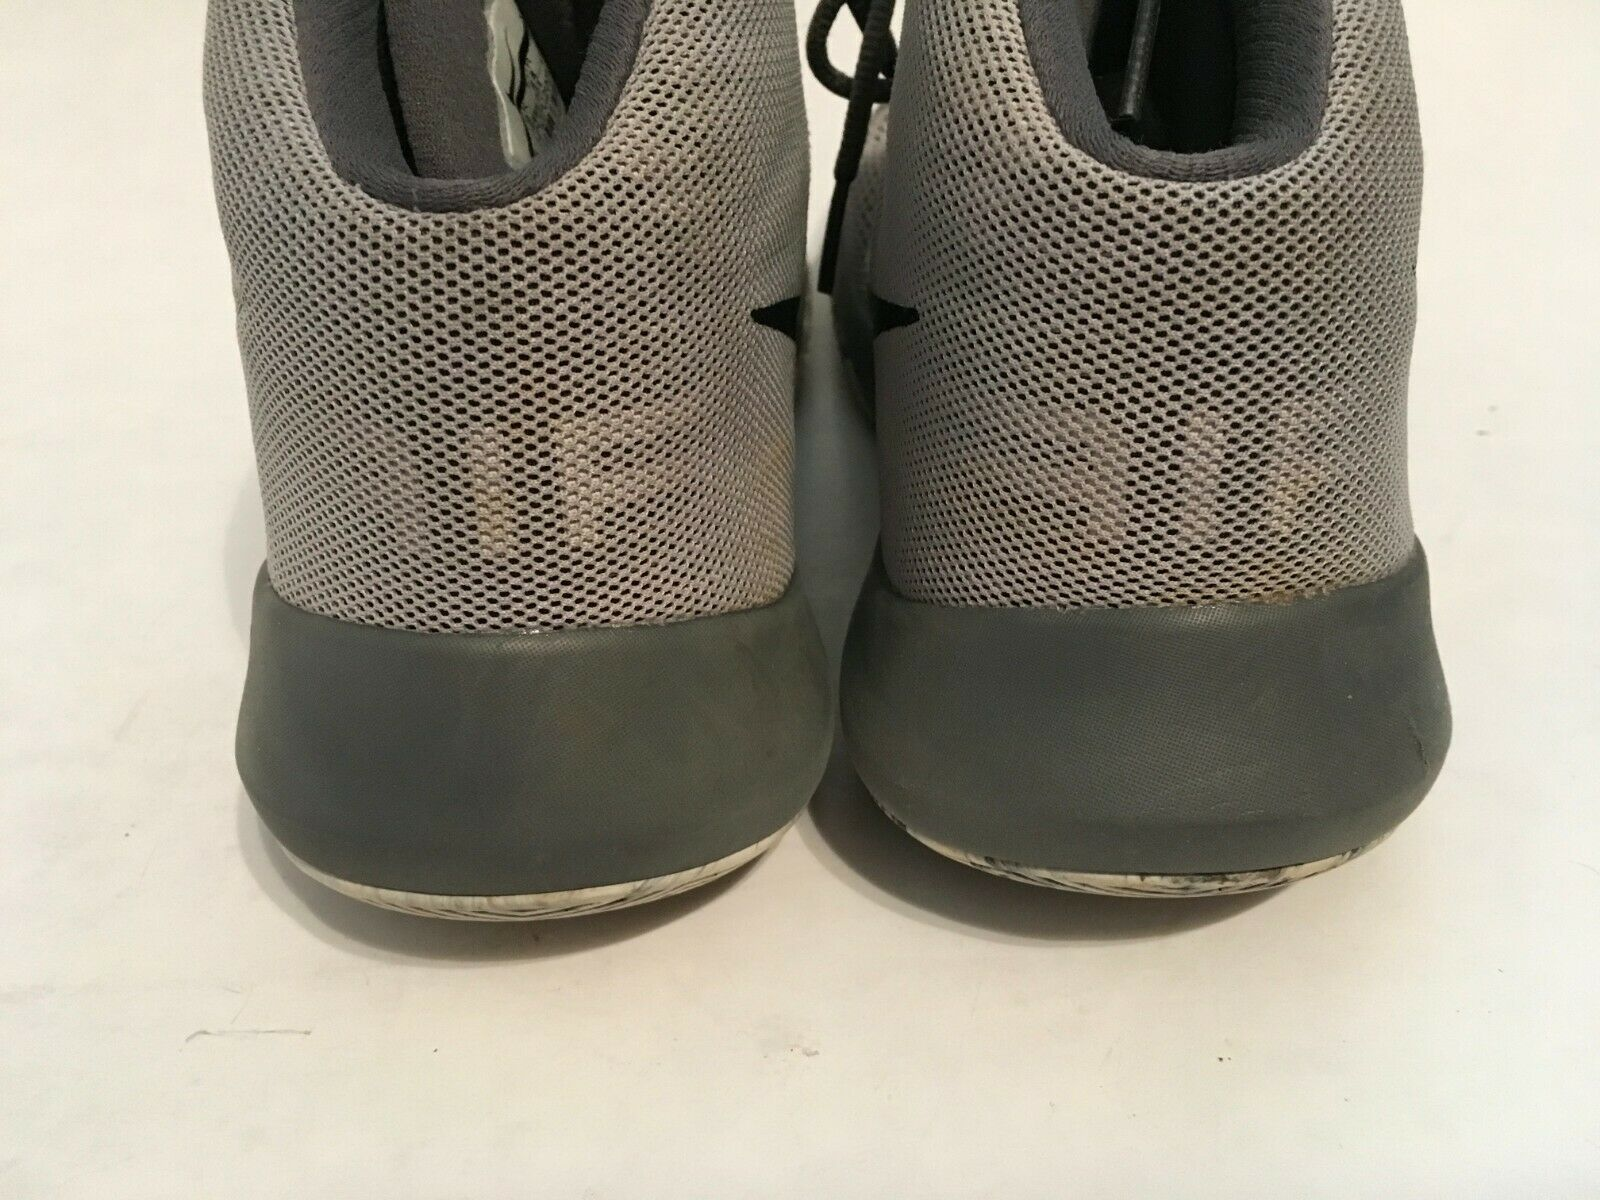 Nike Air Precision Ankle-High Basketball Athletic Shoes Mens sz 10 image 5